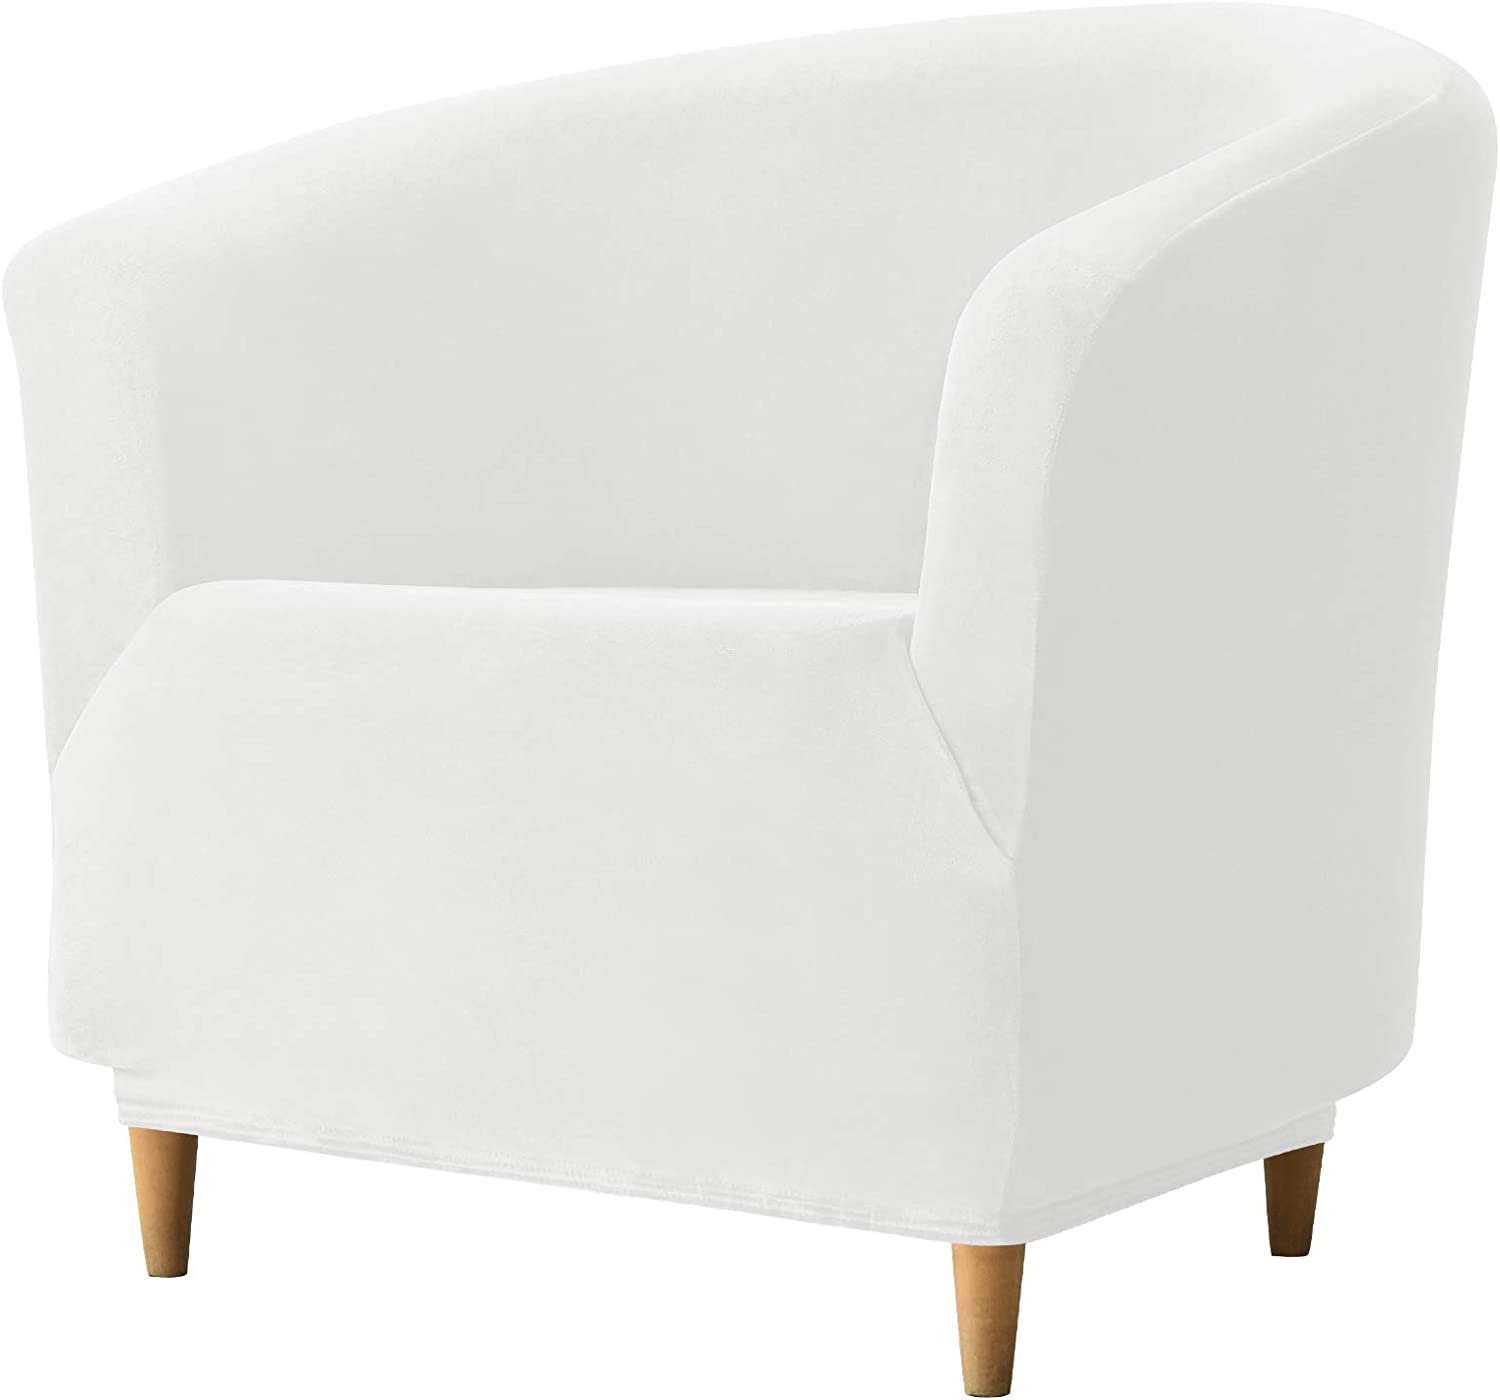 REECOTEX Velvet Club Chair Slipcover, Soft Stretch Tub Chair Cover for Living Room and Bedroom, Washable and Removable Armchair Protector, Furniture Protector for Home Decor,White